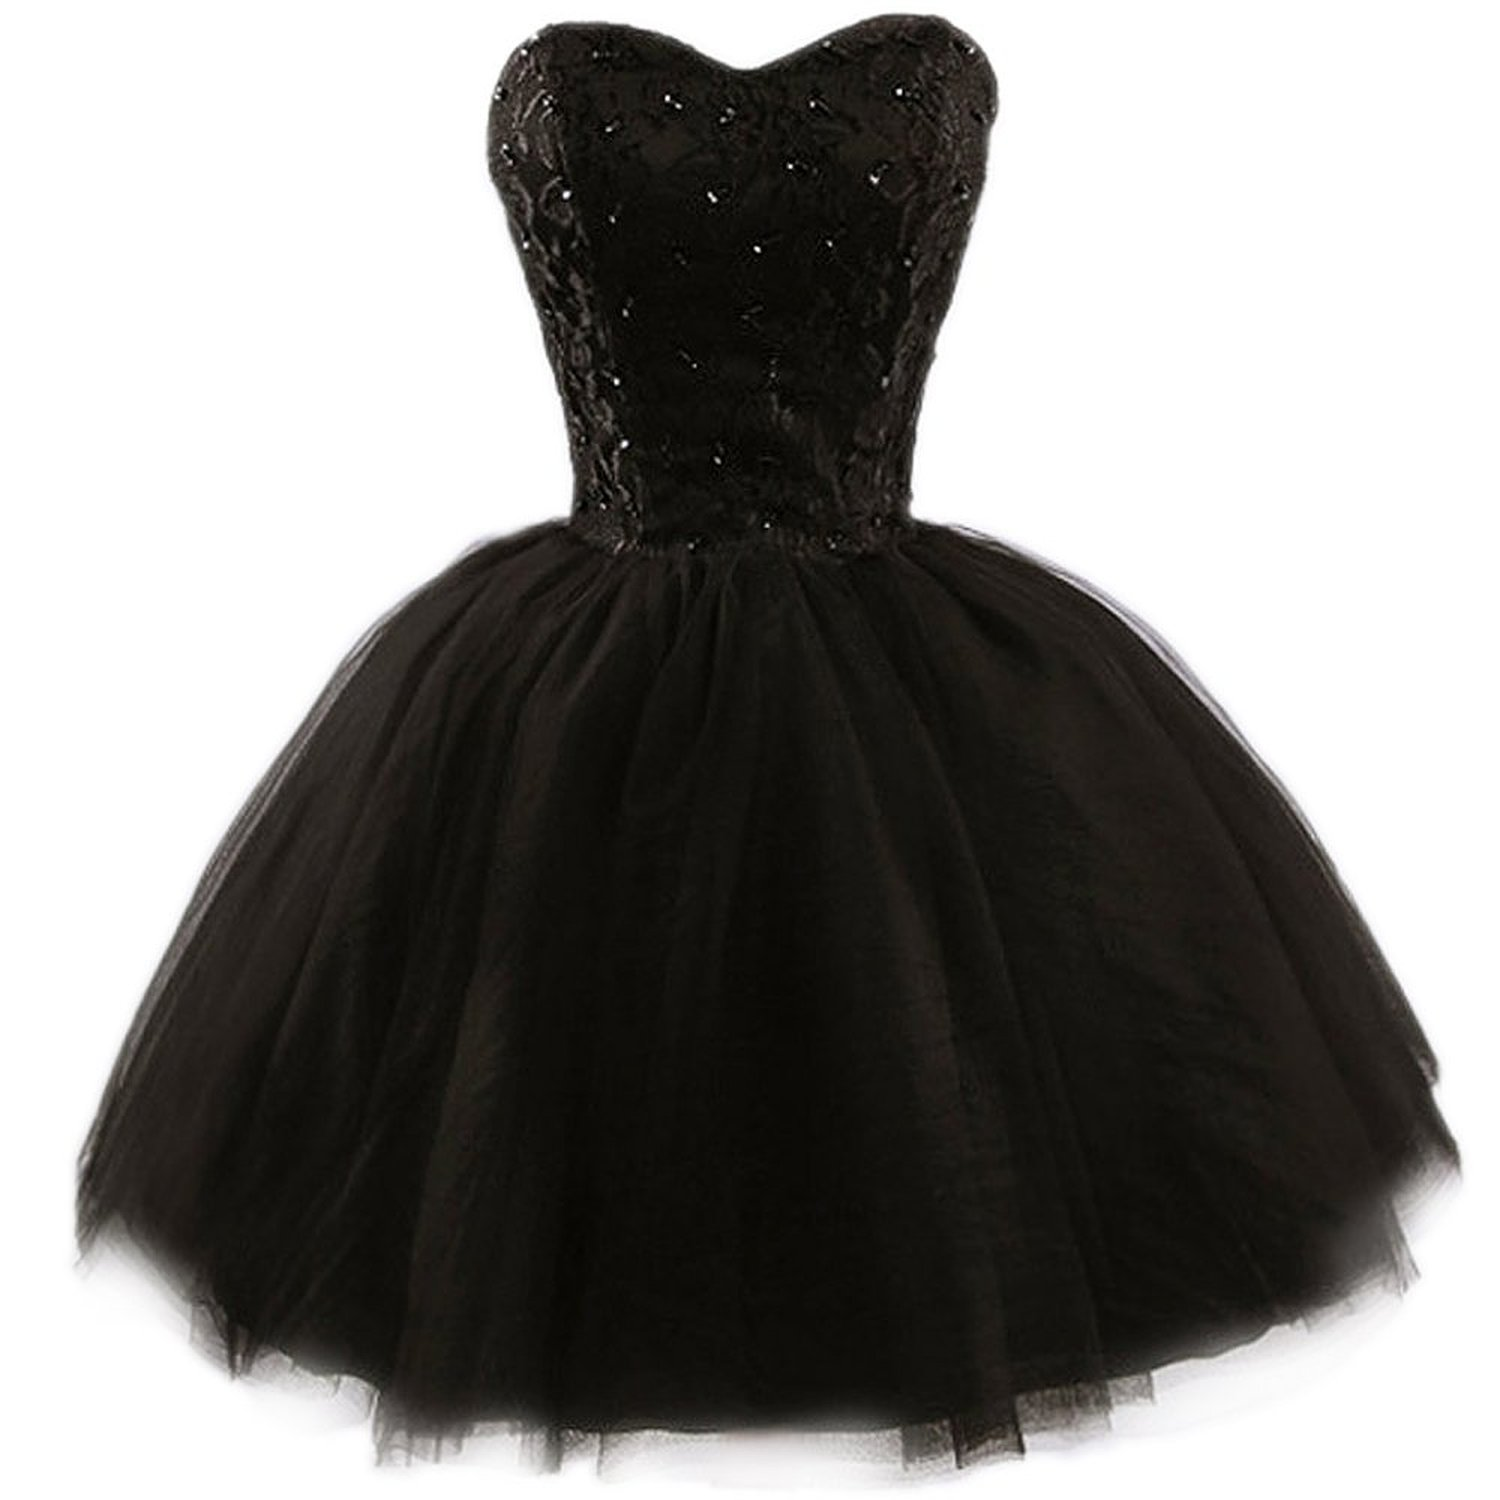 Prettydresses women's black lace cocktail homecoming prom party dresses at amazon women's clothing store: